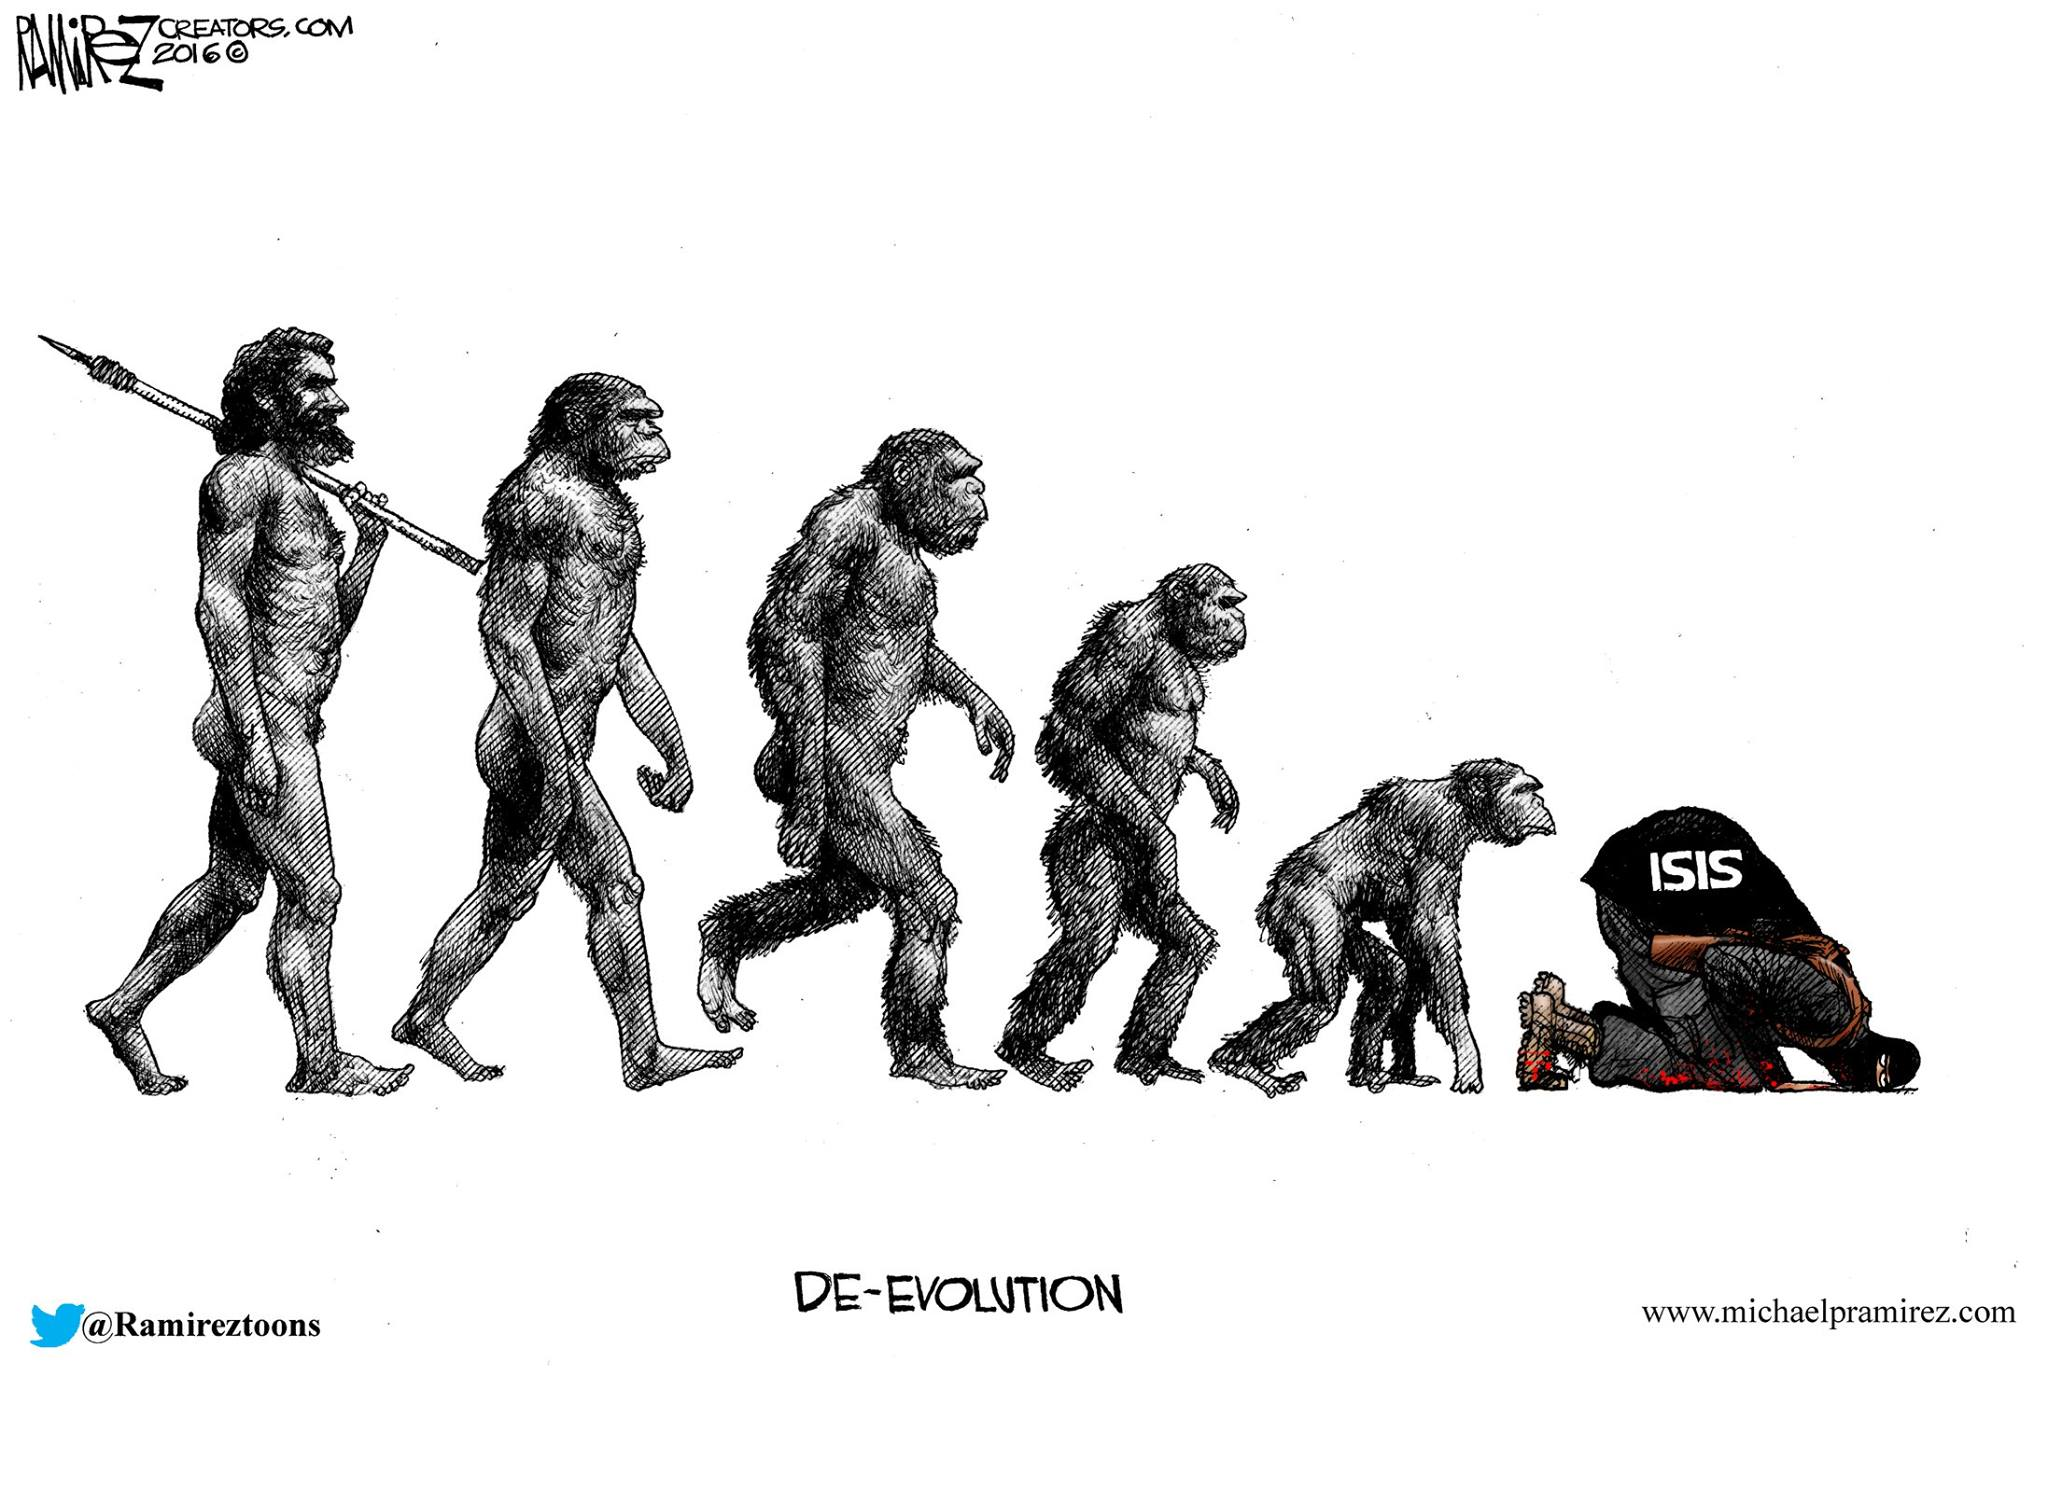 Islam devolution Michael Ramirez cartoon